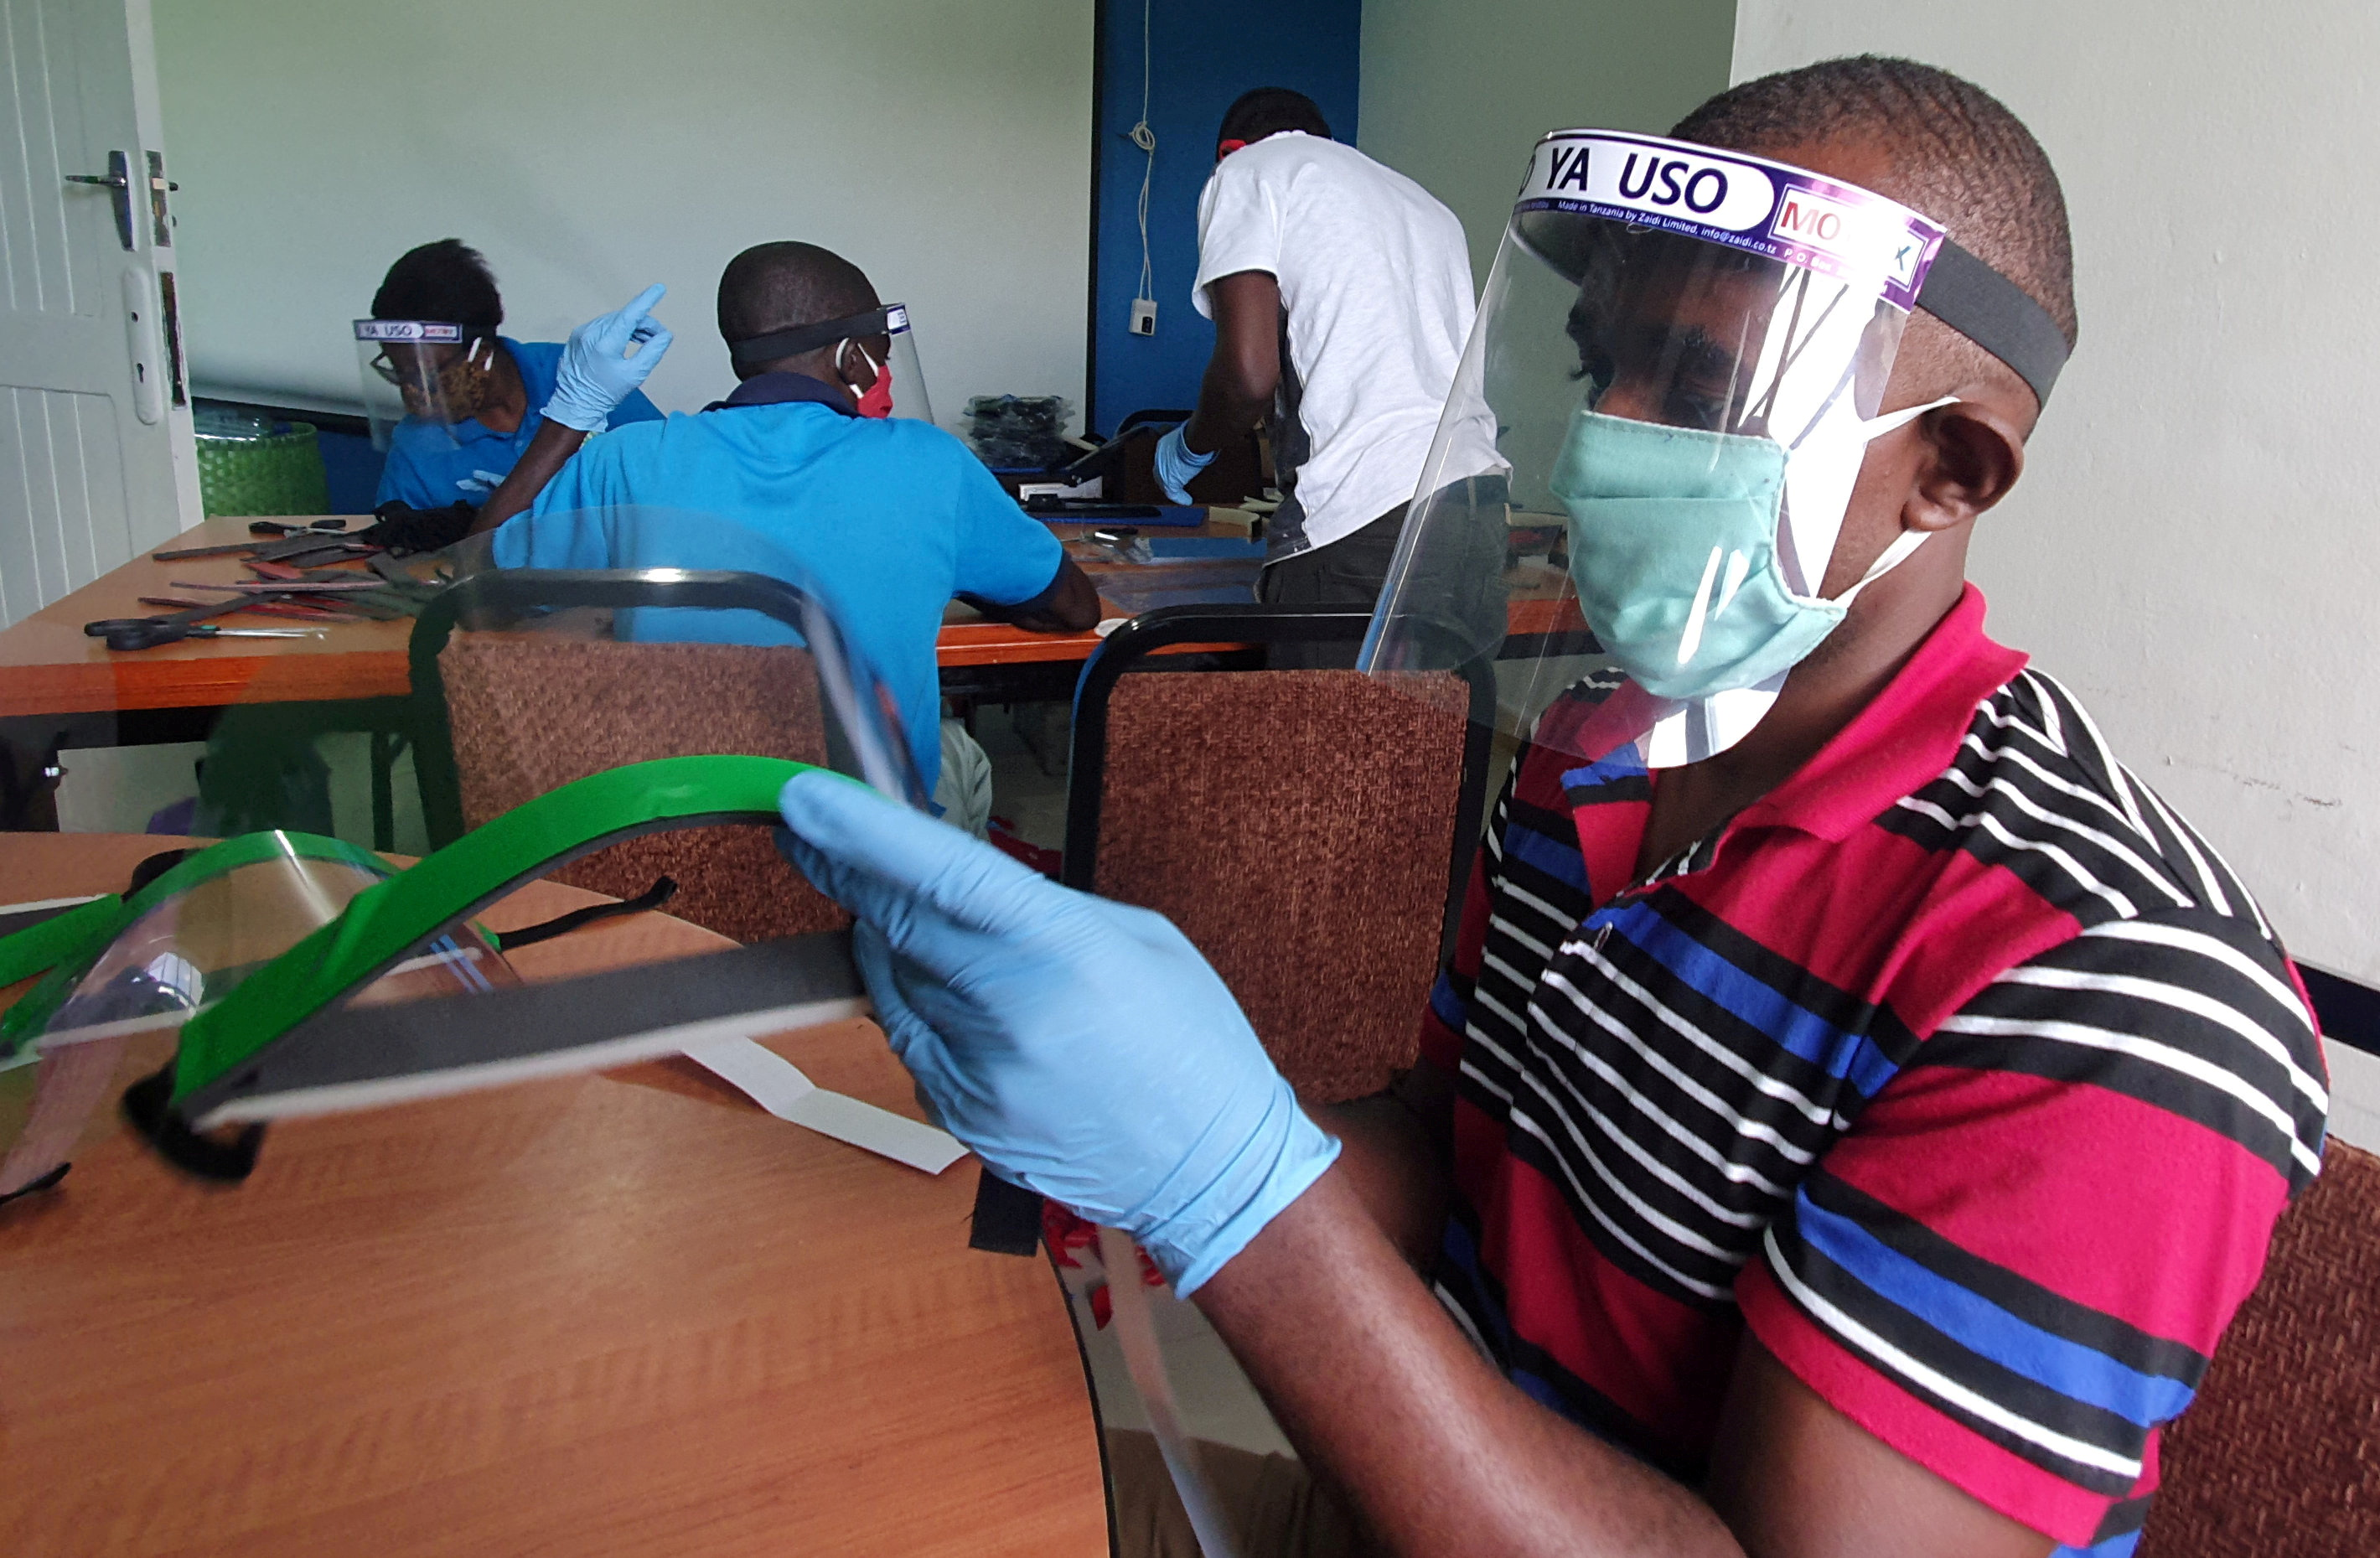 Workers prepare face shields from recycled plastics at the Zaidi Recyclers workshop as a measure to stop the spread of coronavirus disease (COVID-19) in Dar es Salaam, Tanzania May 27, 2020. REUTERS/Stringer/File Photo